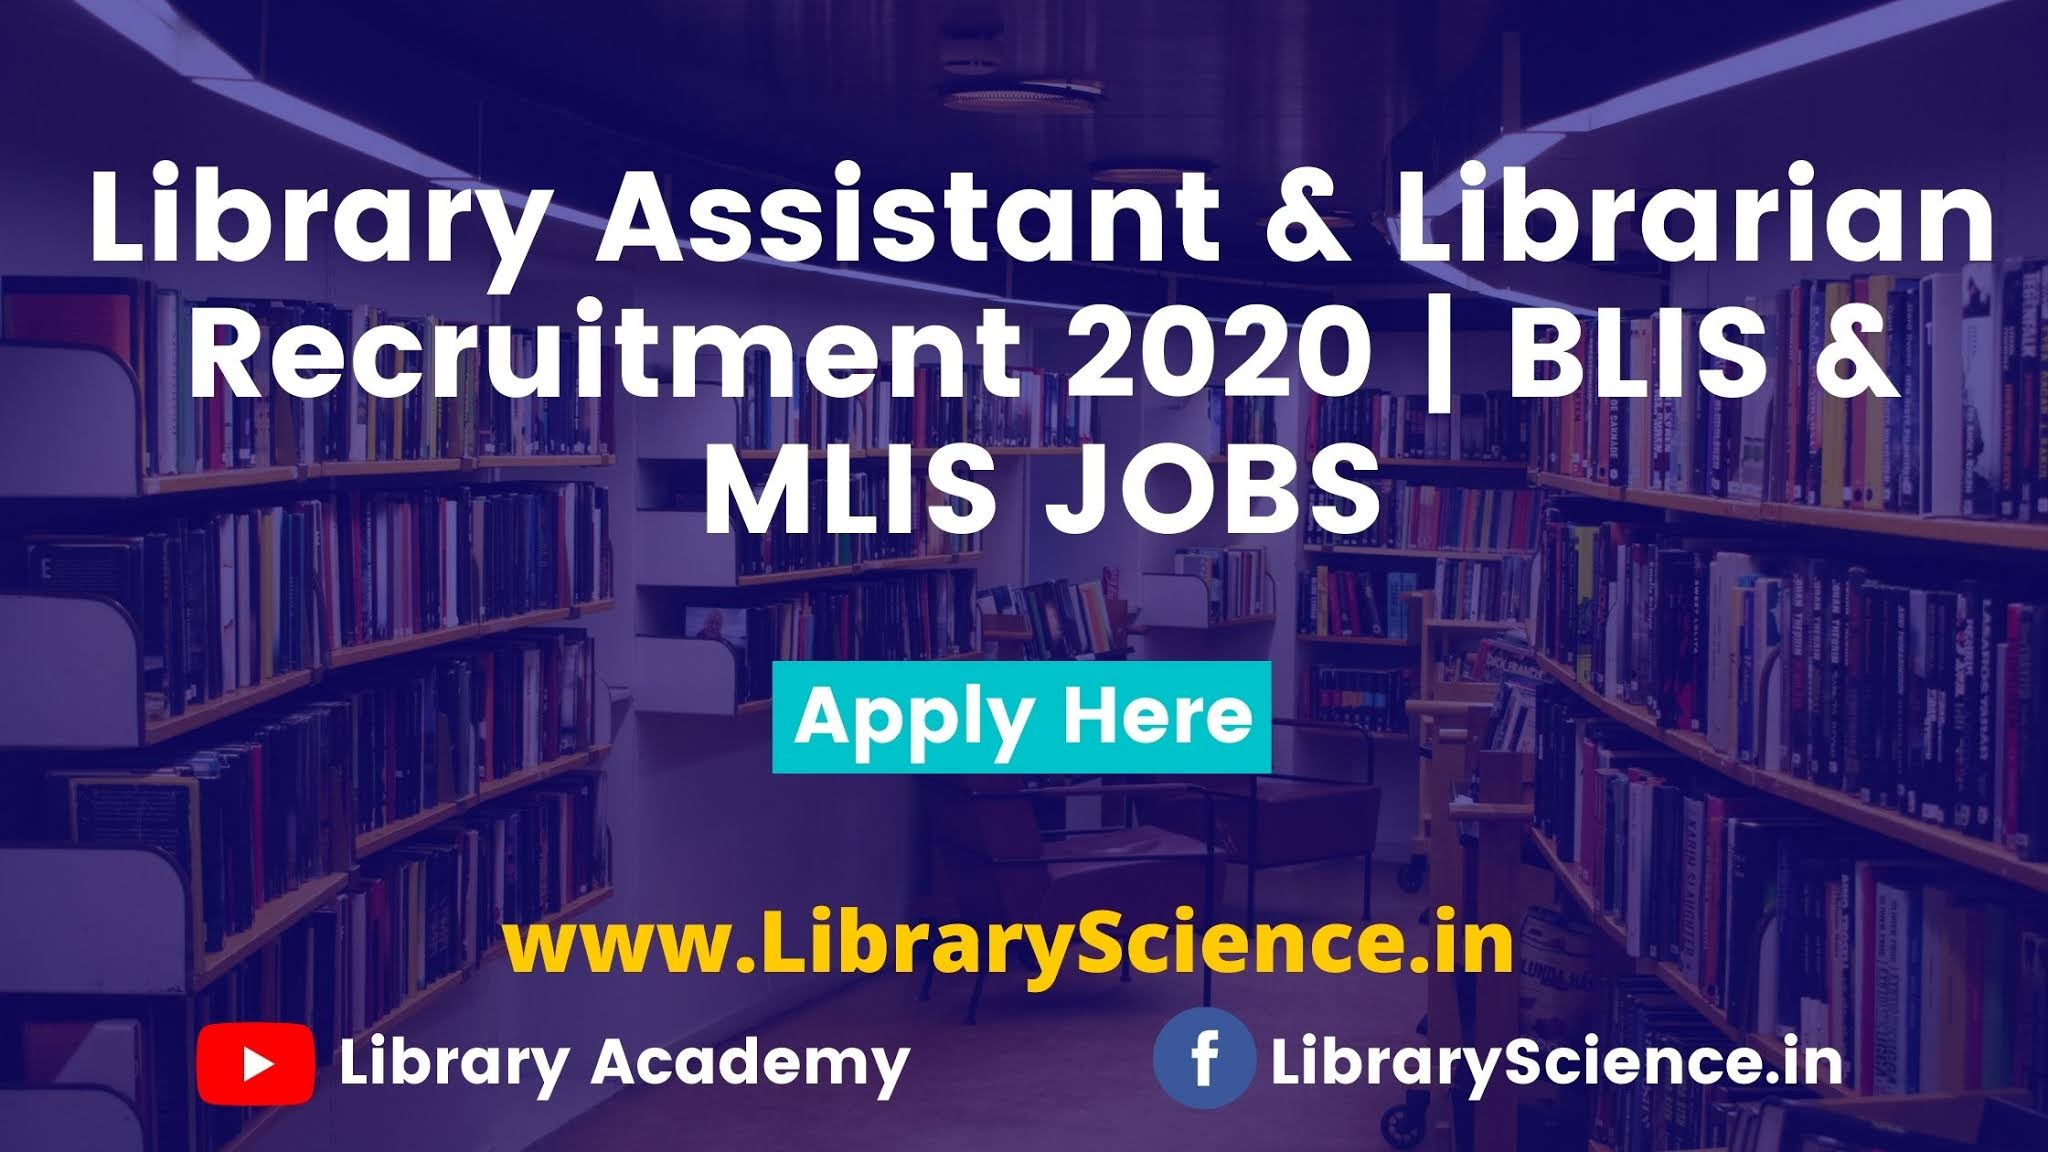 Library Assistant & Librarian Recruitment 2020